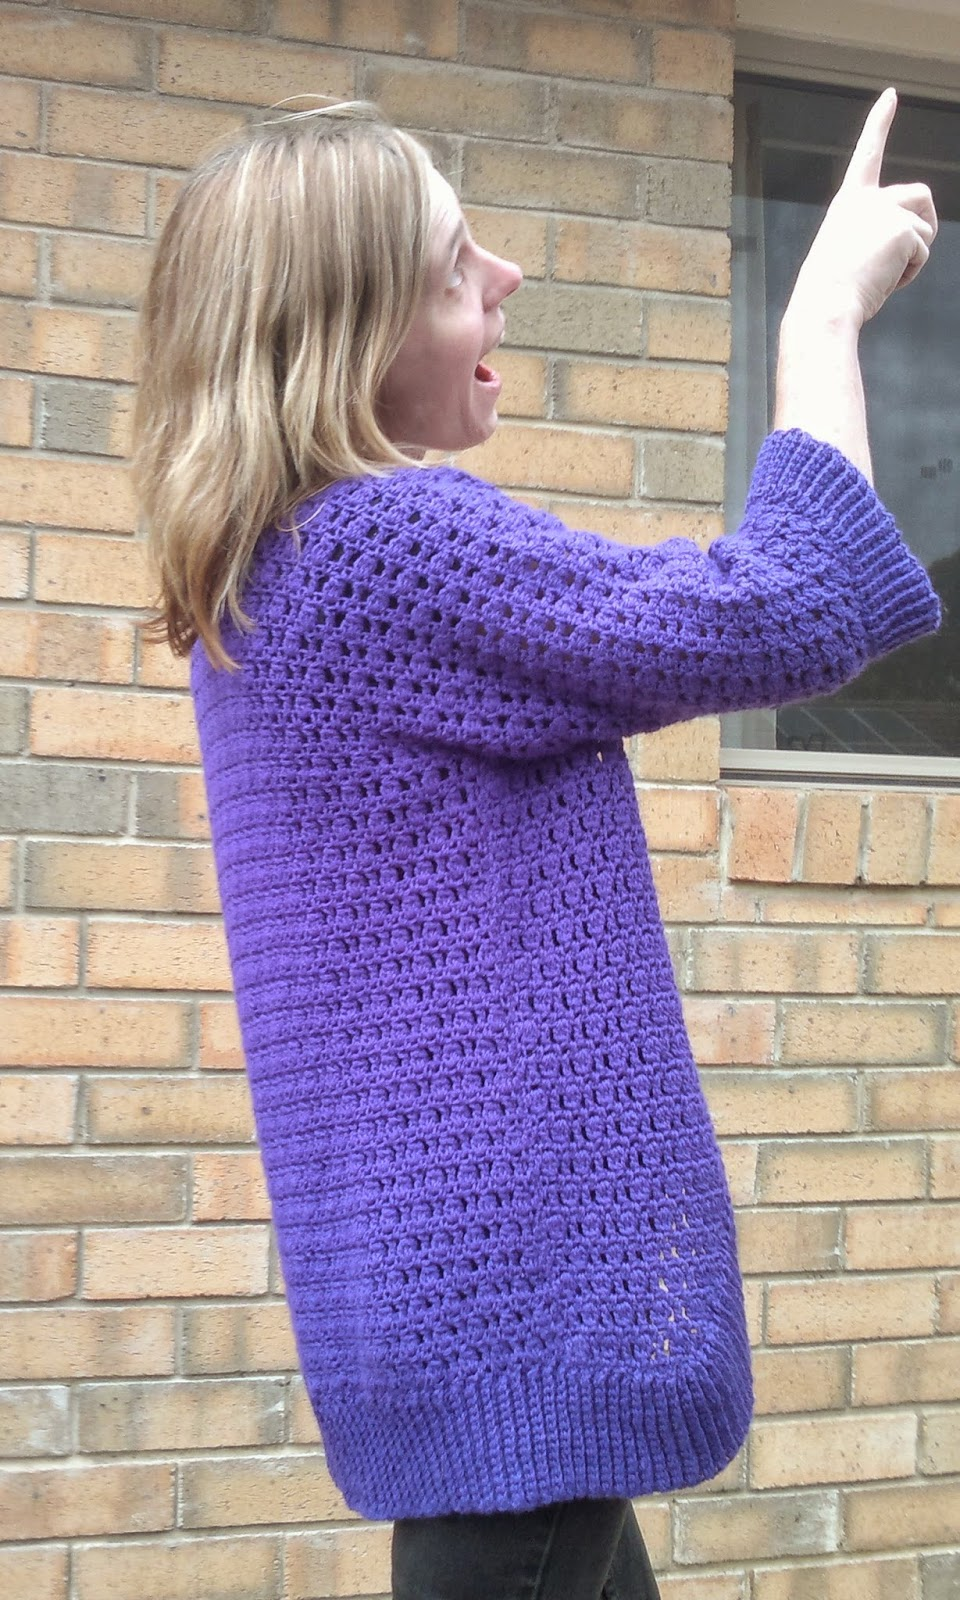 Jodie points to the sky while displaying the right hand side of the cardigan.